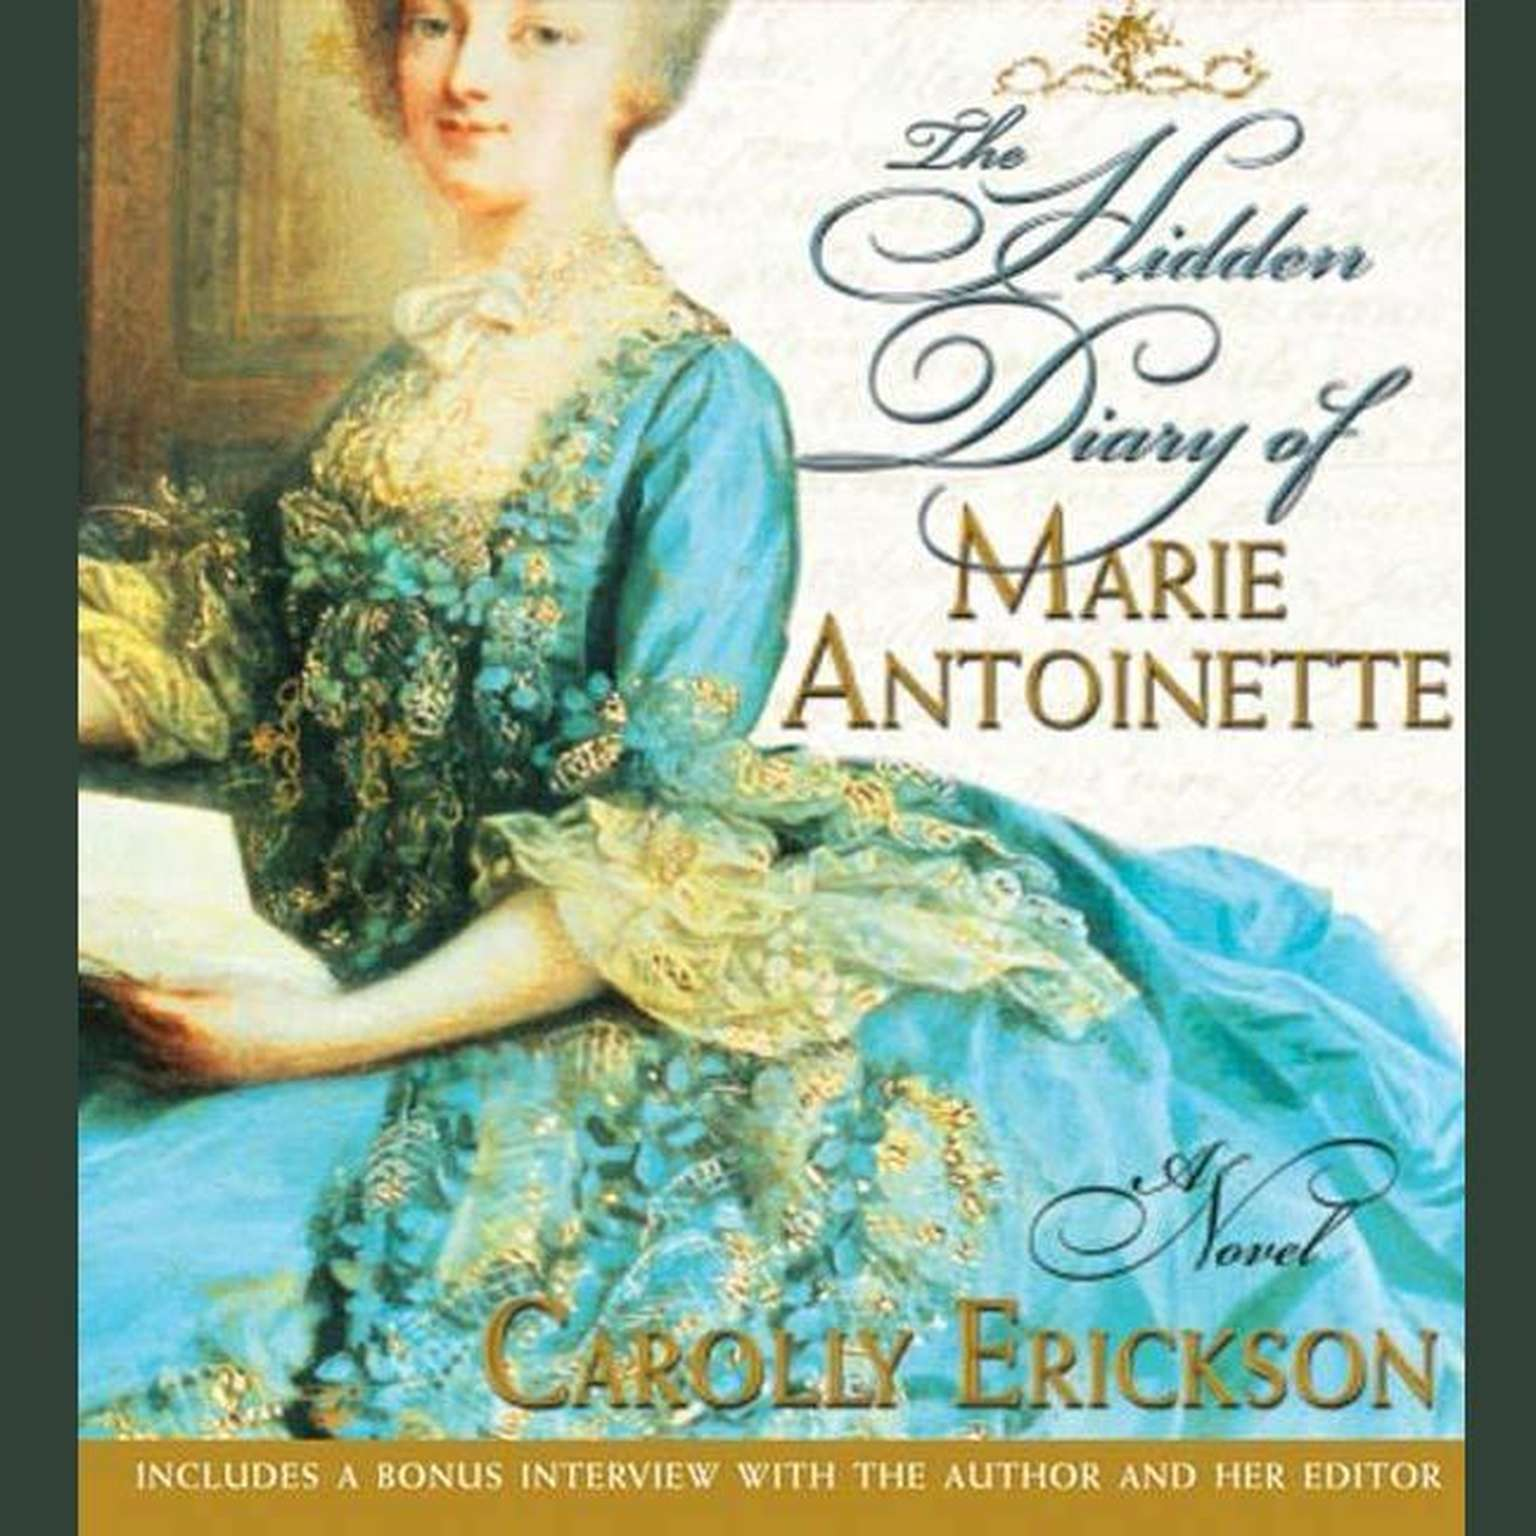 Printable The Hidden Diary of Marie Antoinette: A Novel Audiobook Cover Art